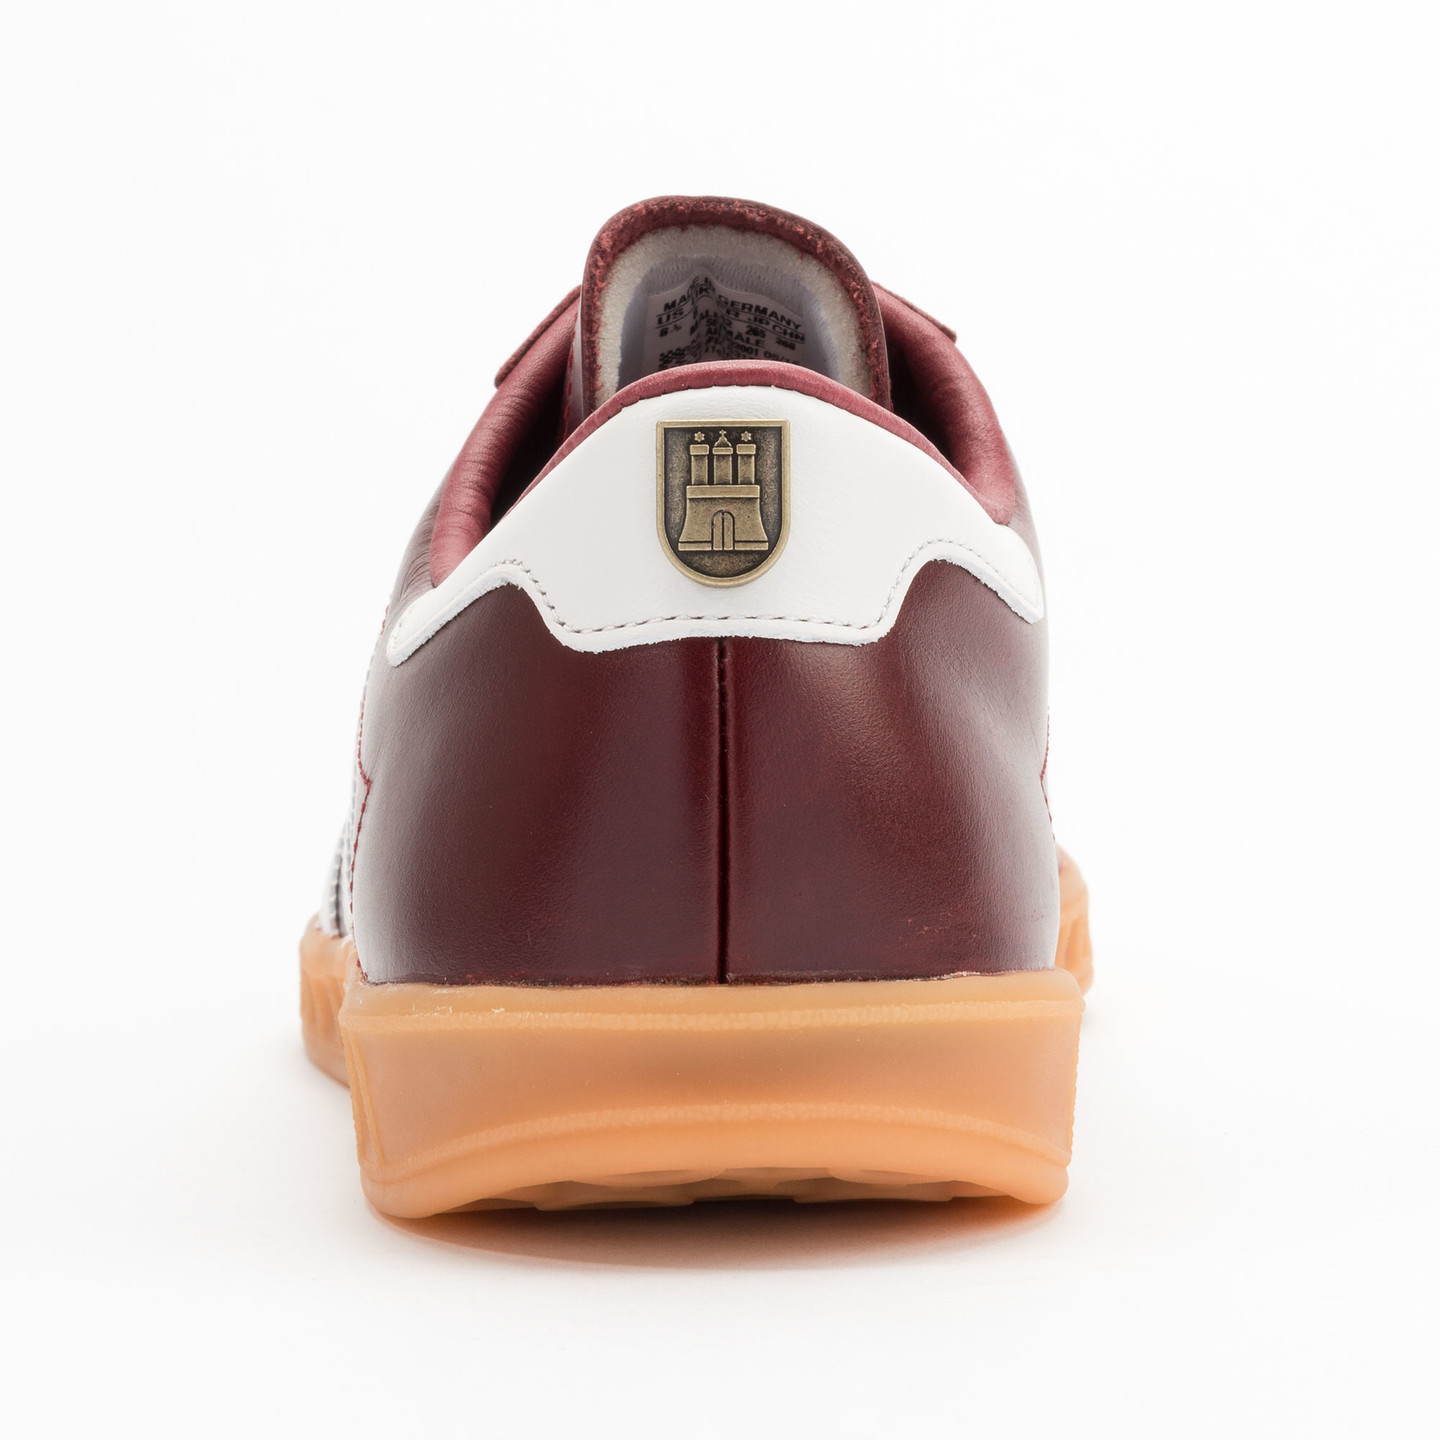 Adidas Hamburg - Made in Germany Burgundy / White / Gold / Gum S31603-46